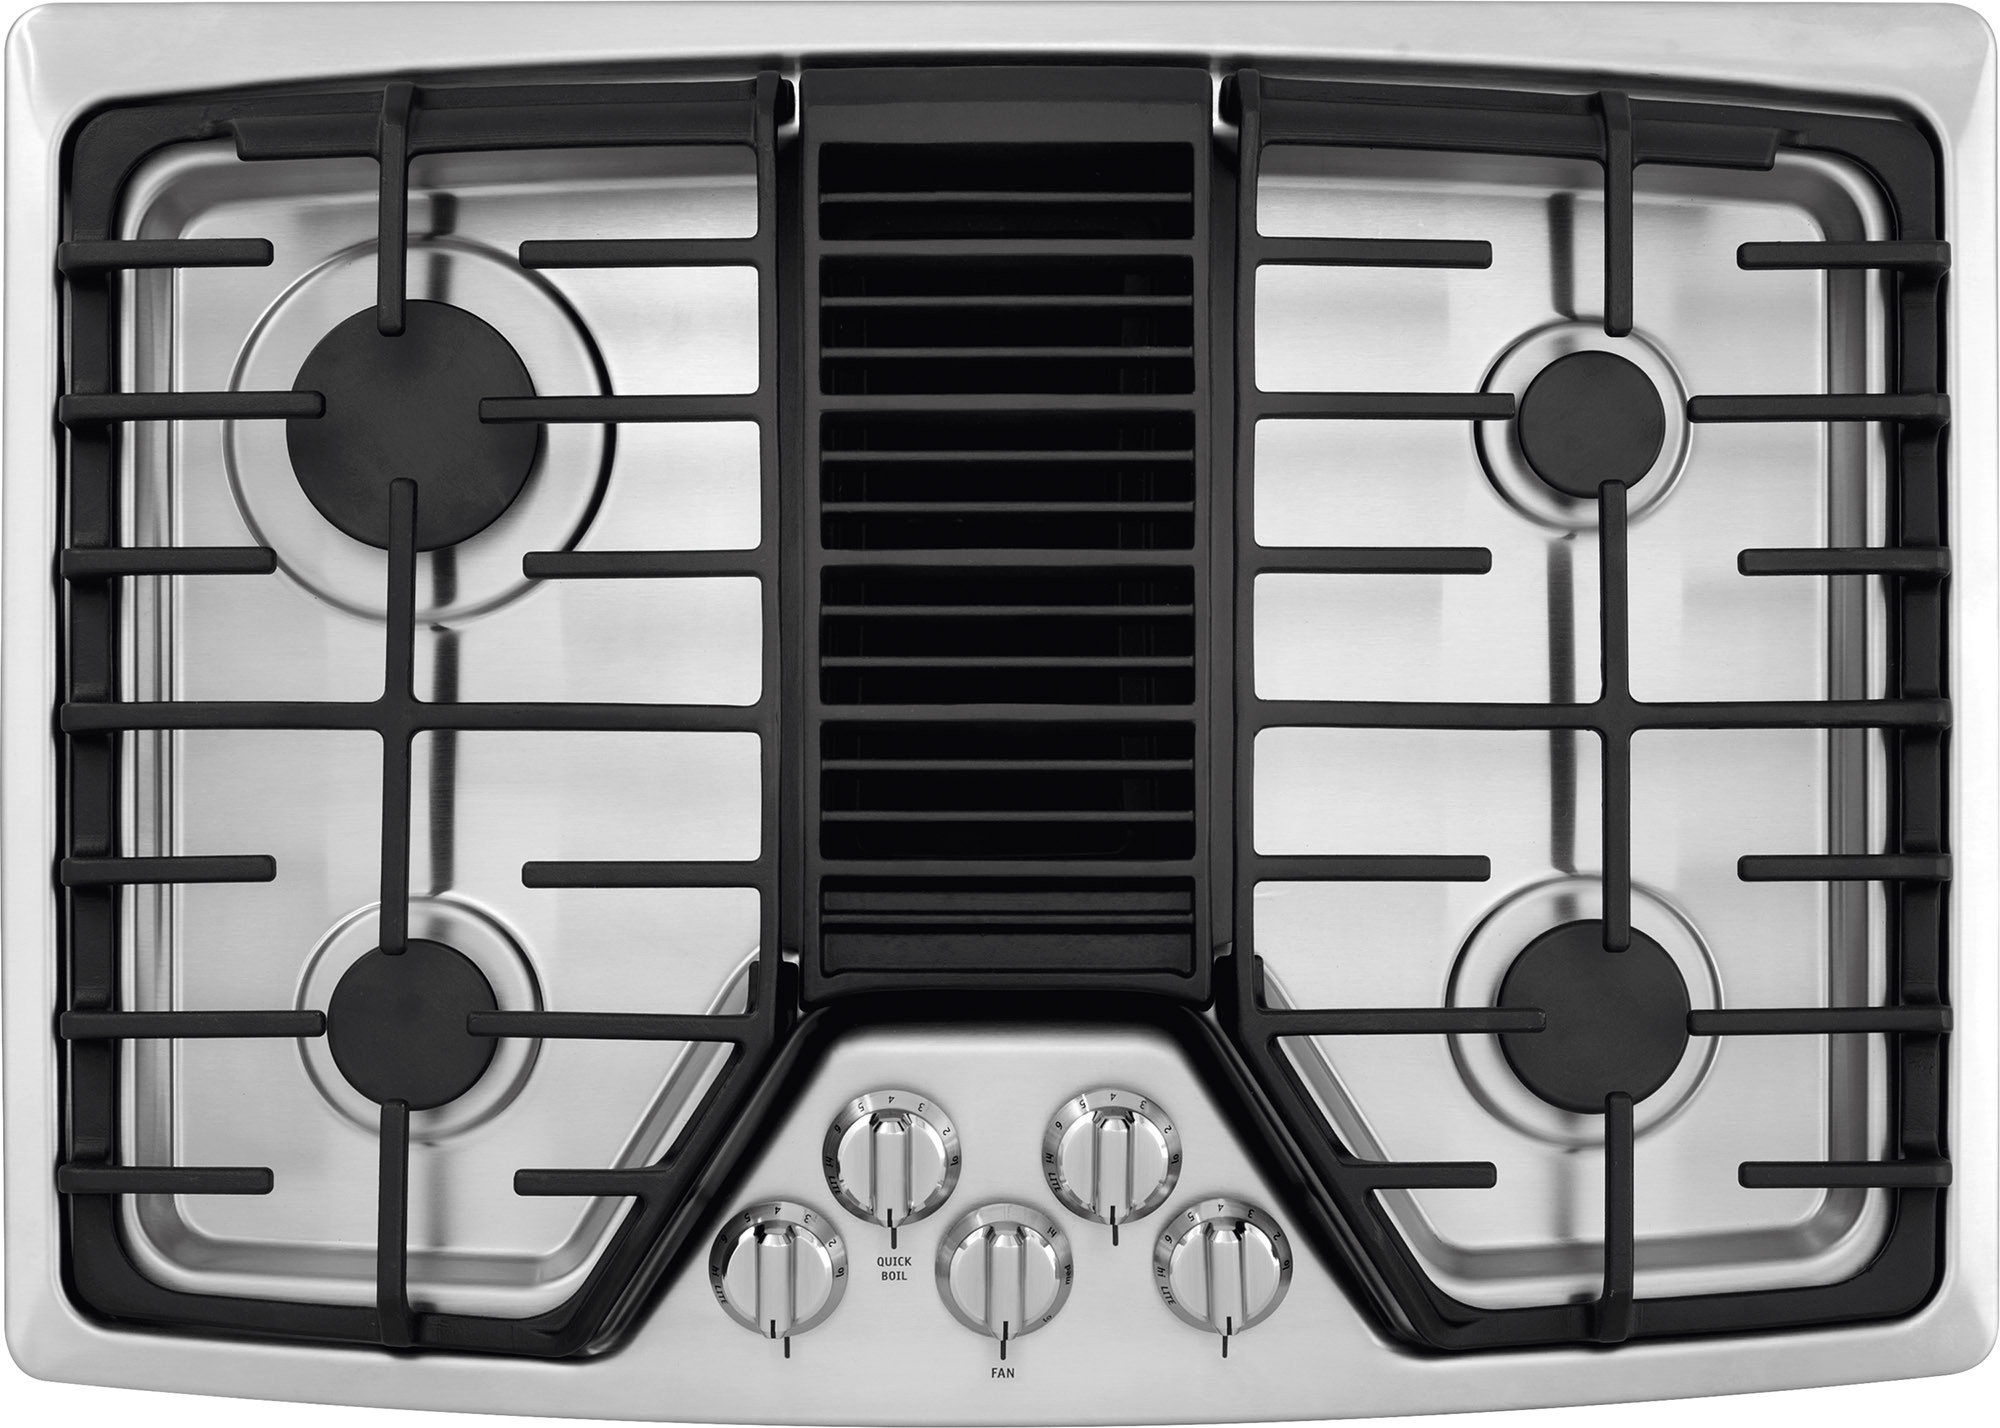 Frigidaire Rc30dg60ps 30 Inch Gas Cooktop With 4 Sealed Burners Downdraft Ventilation 3 Ducting Options Recessed Continuous Grates